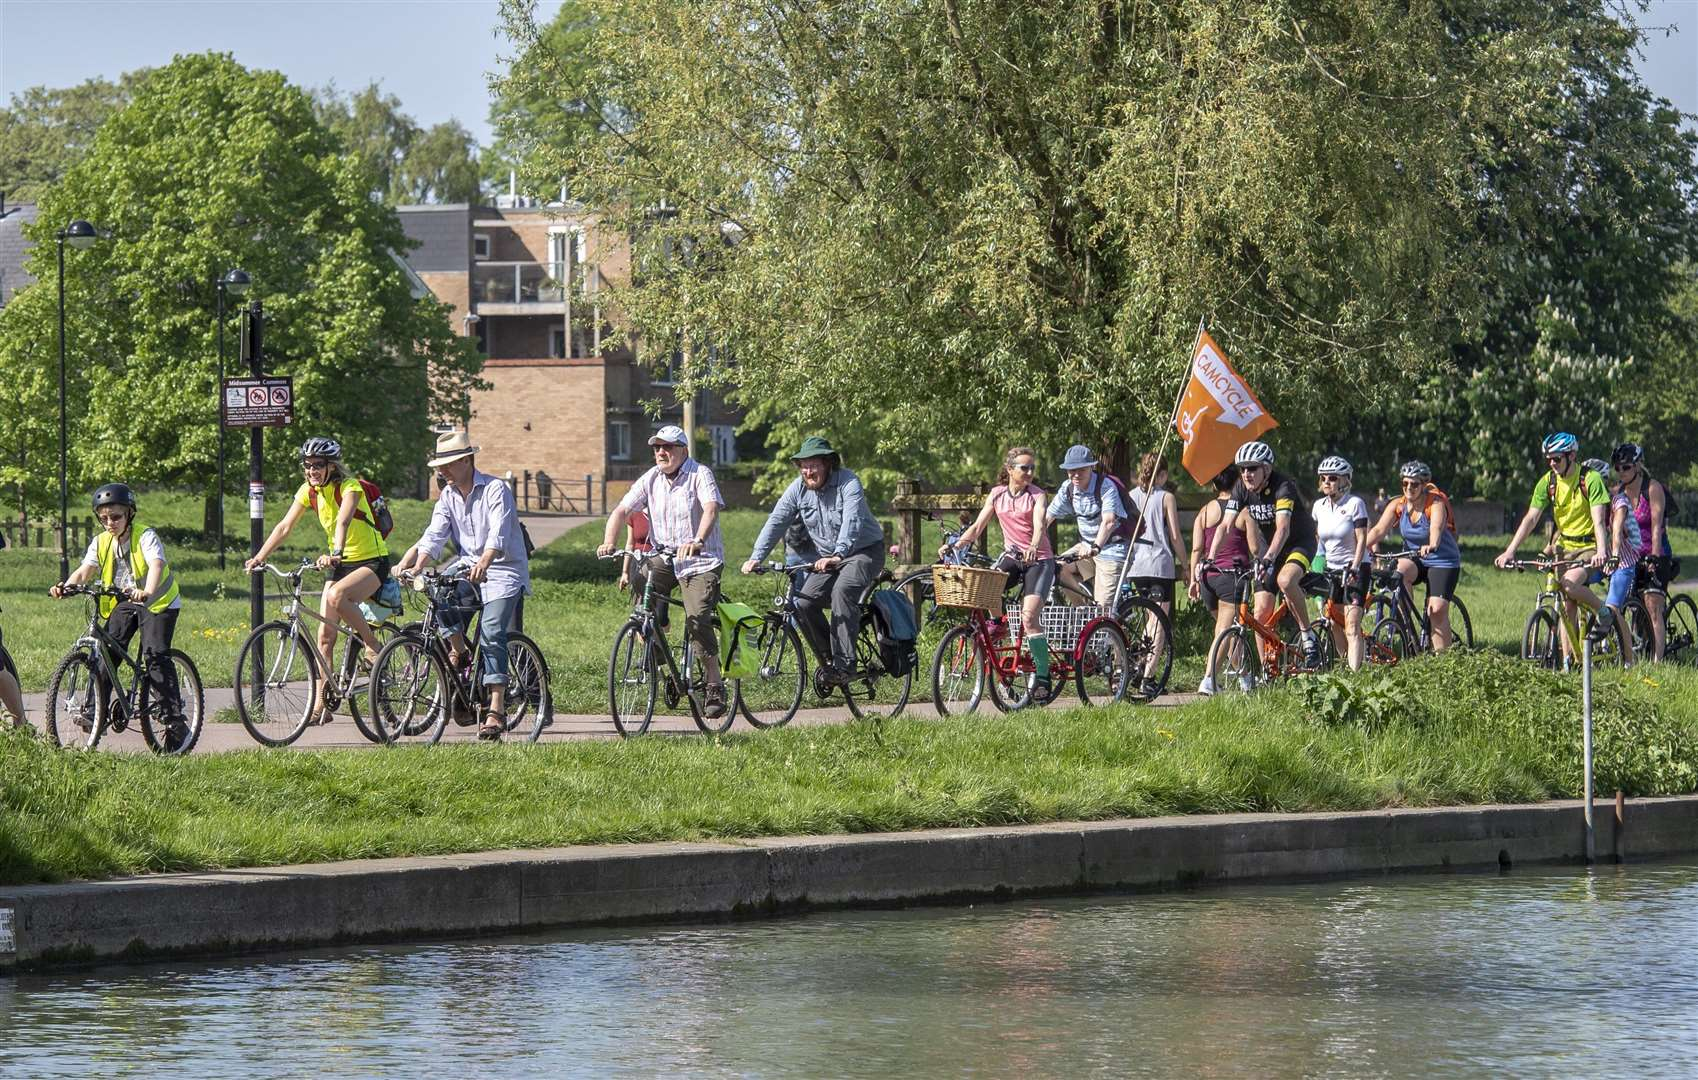 Cambridge to Reach Fair tradtional cycle rideorganised by Camcycle . Picture: Keith Heppell. (9586959)